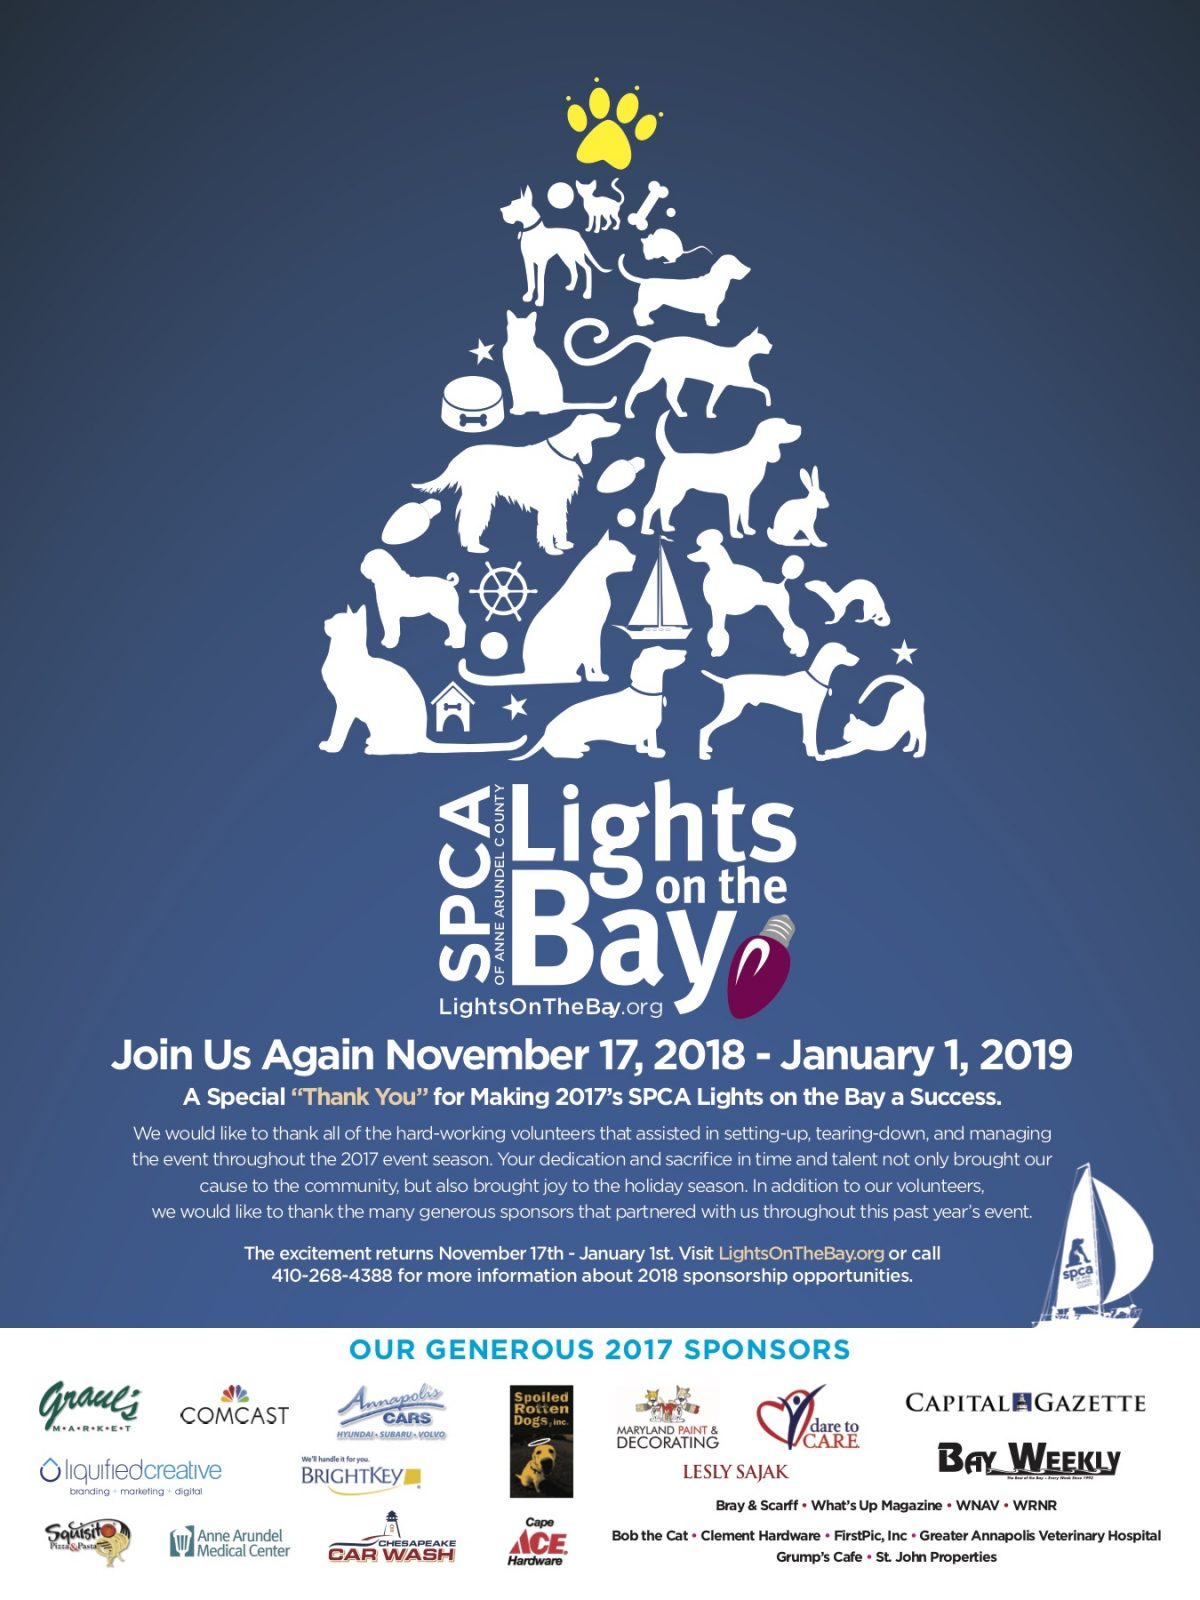 Lights On The Bay-11/17 to 01/01